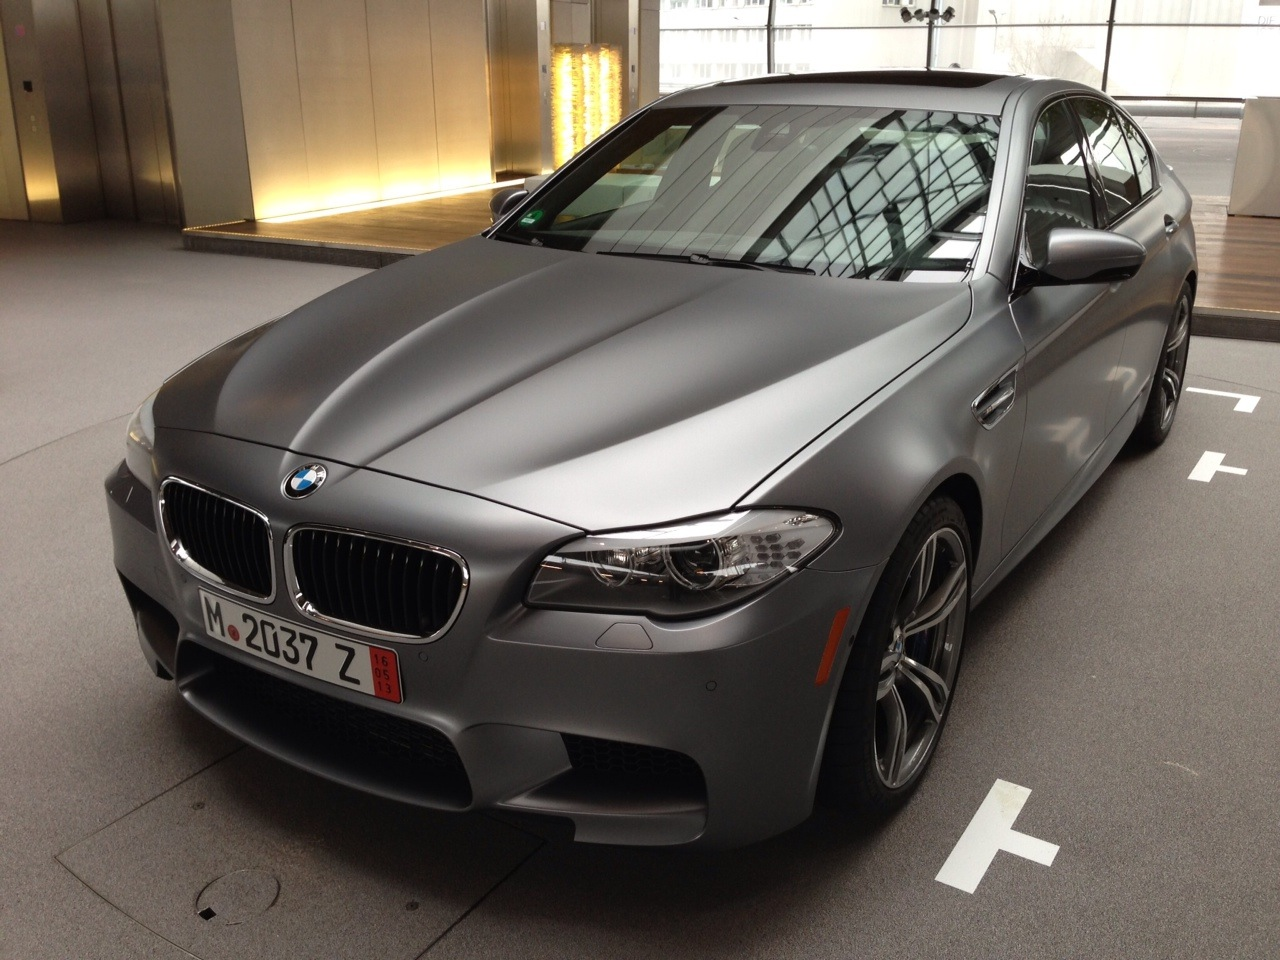 European Delivery Of Frozen Grey M5